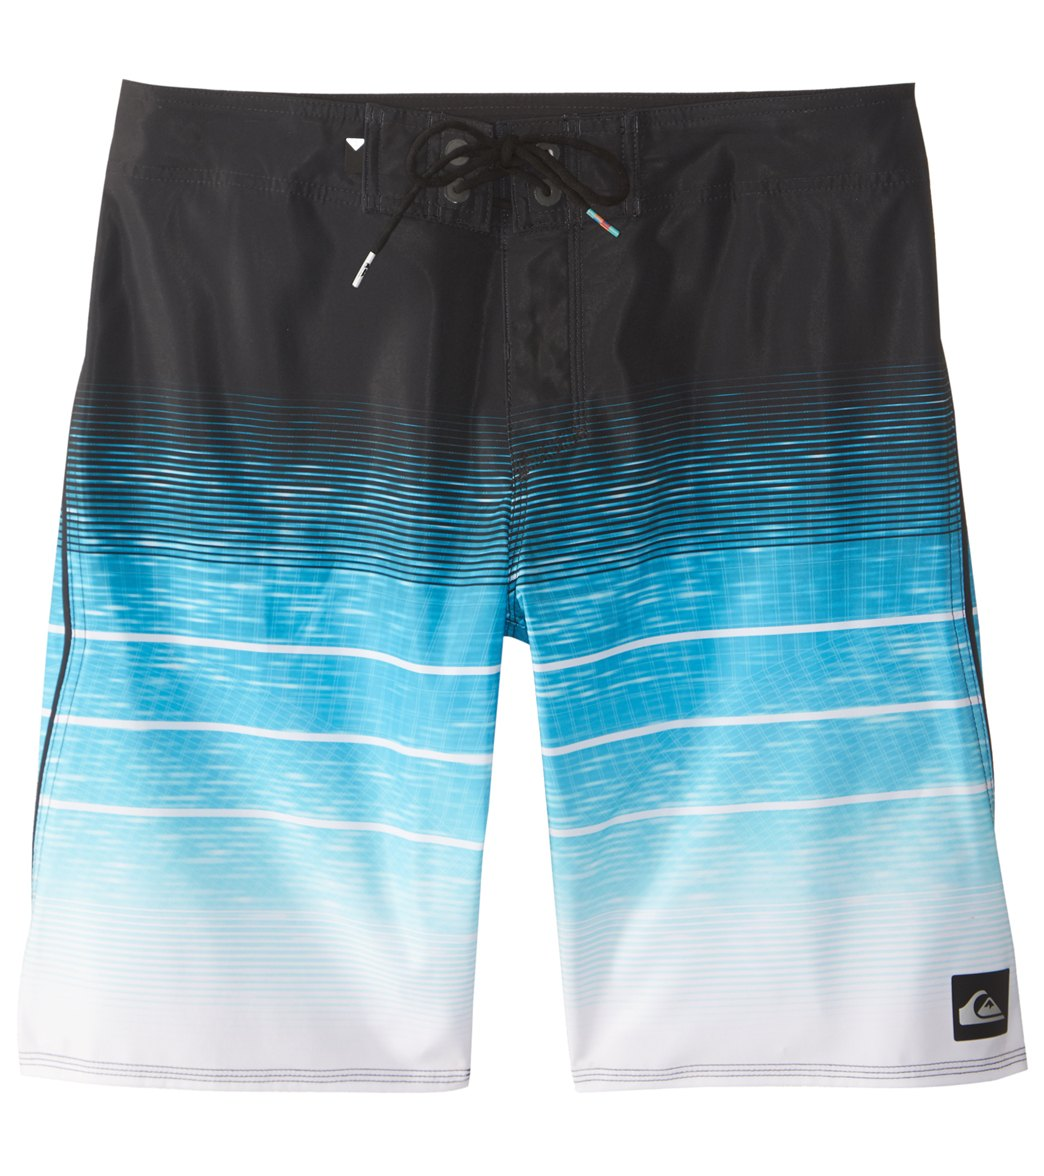 cd7f4fd145 Quiksilver Men's Slab Momentum Vee 21 Boardshort at SwimOutlet ...